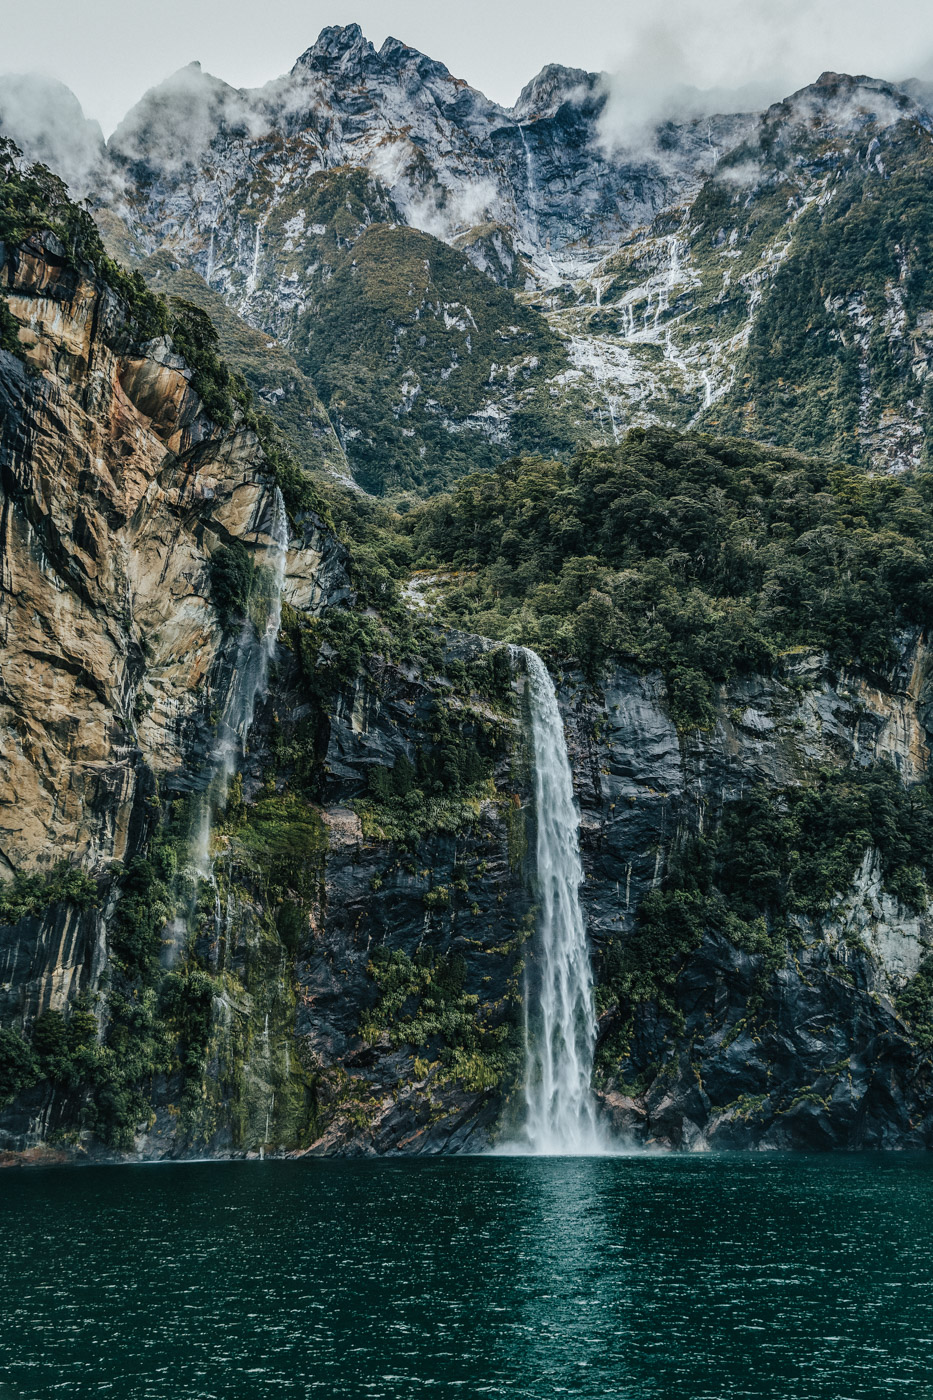 Waterfalls on our Milford Sound cruise.